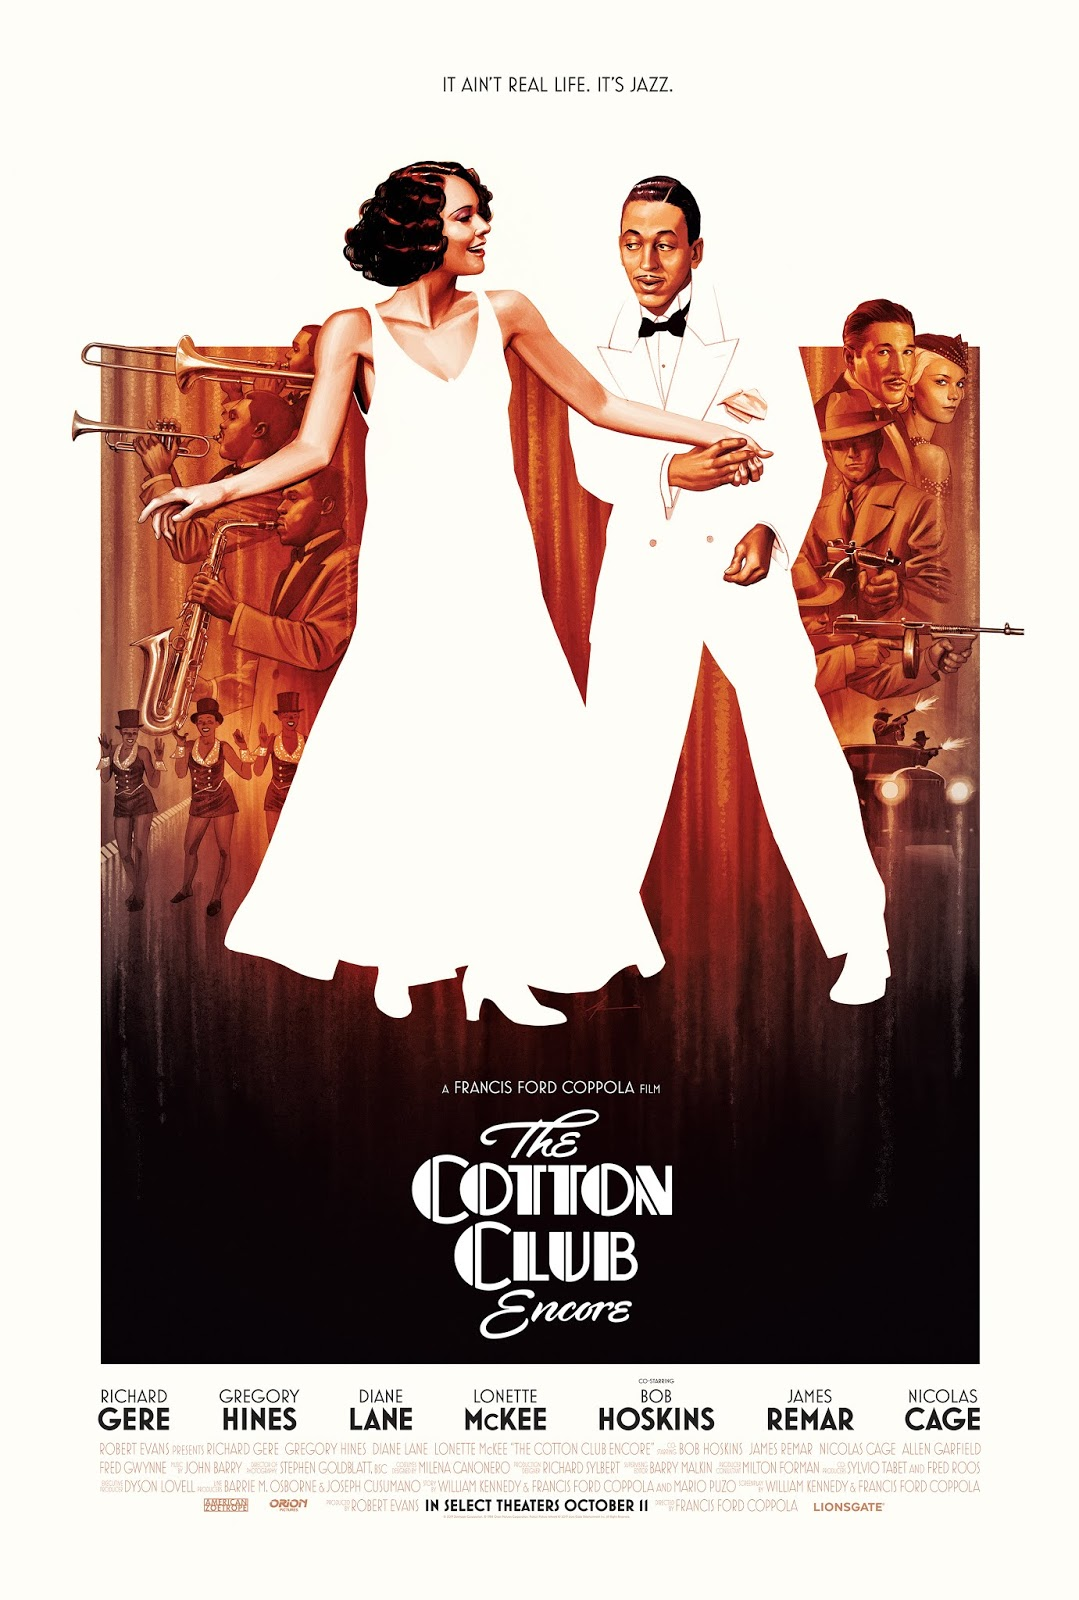 Francis Ford Coppola S Newly Recut The Cotton Club Encore In